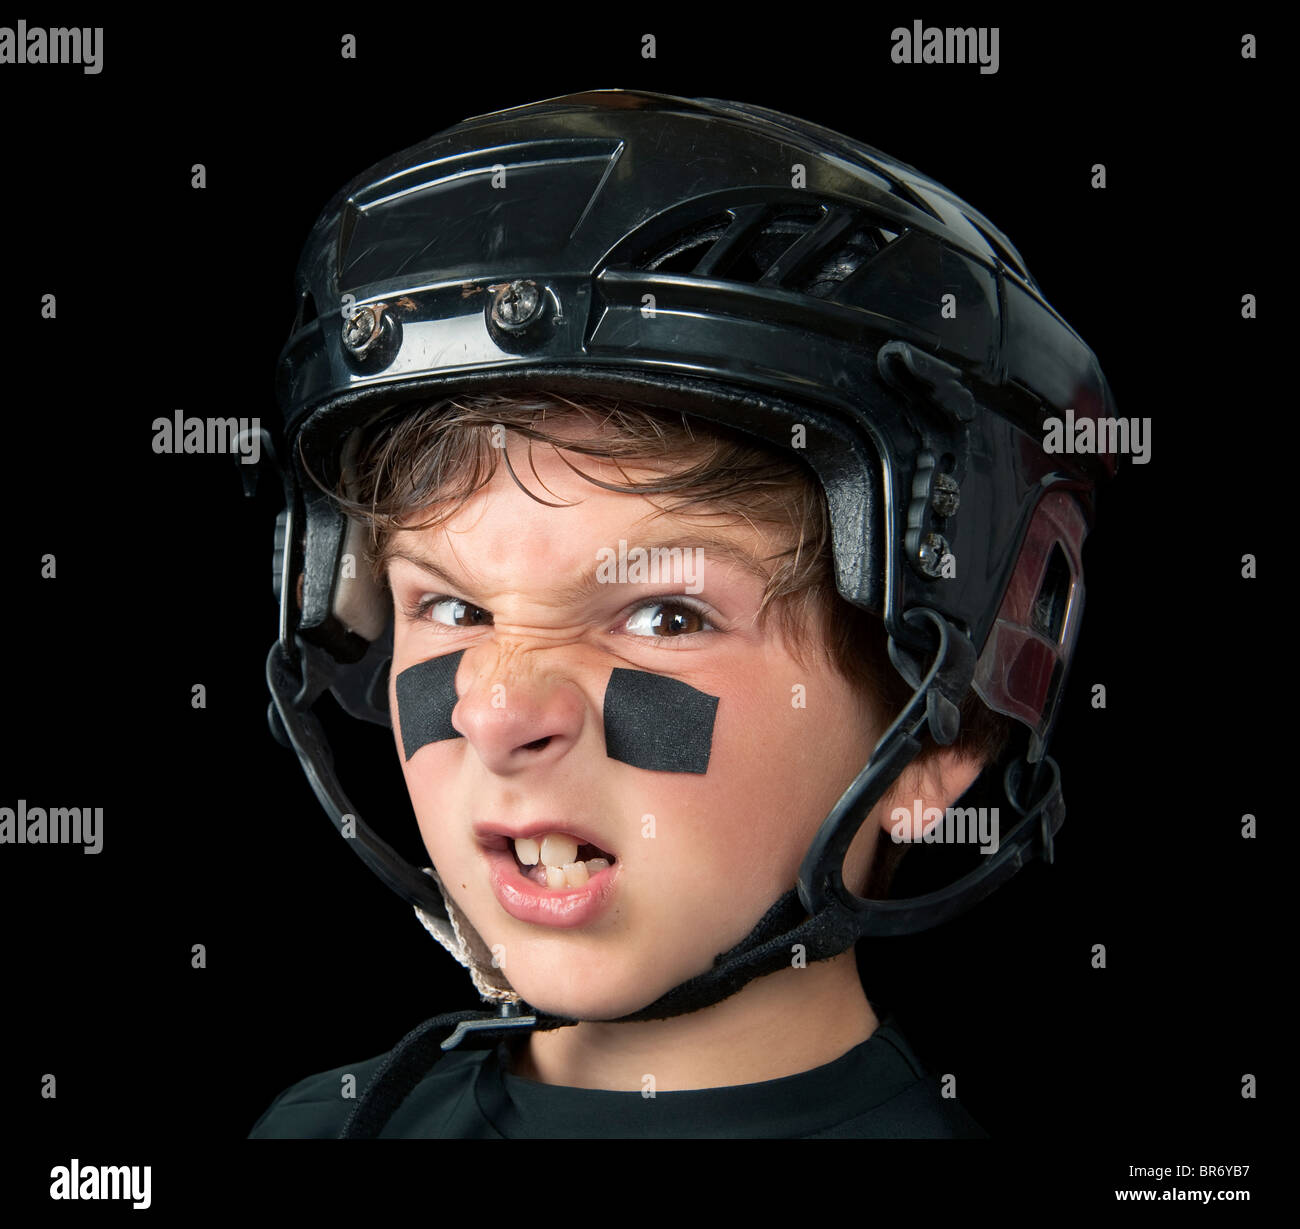 A youth hockey player wearing protective headware snarls at the camera - Stock Image